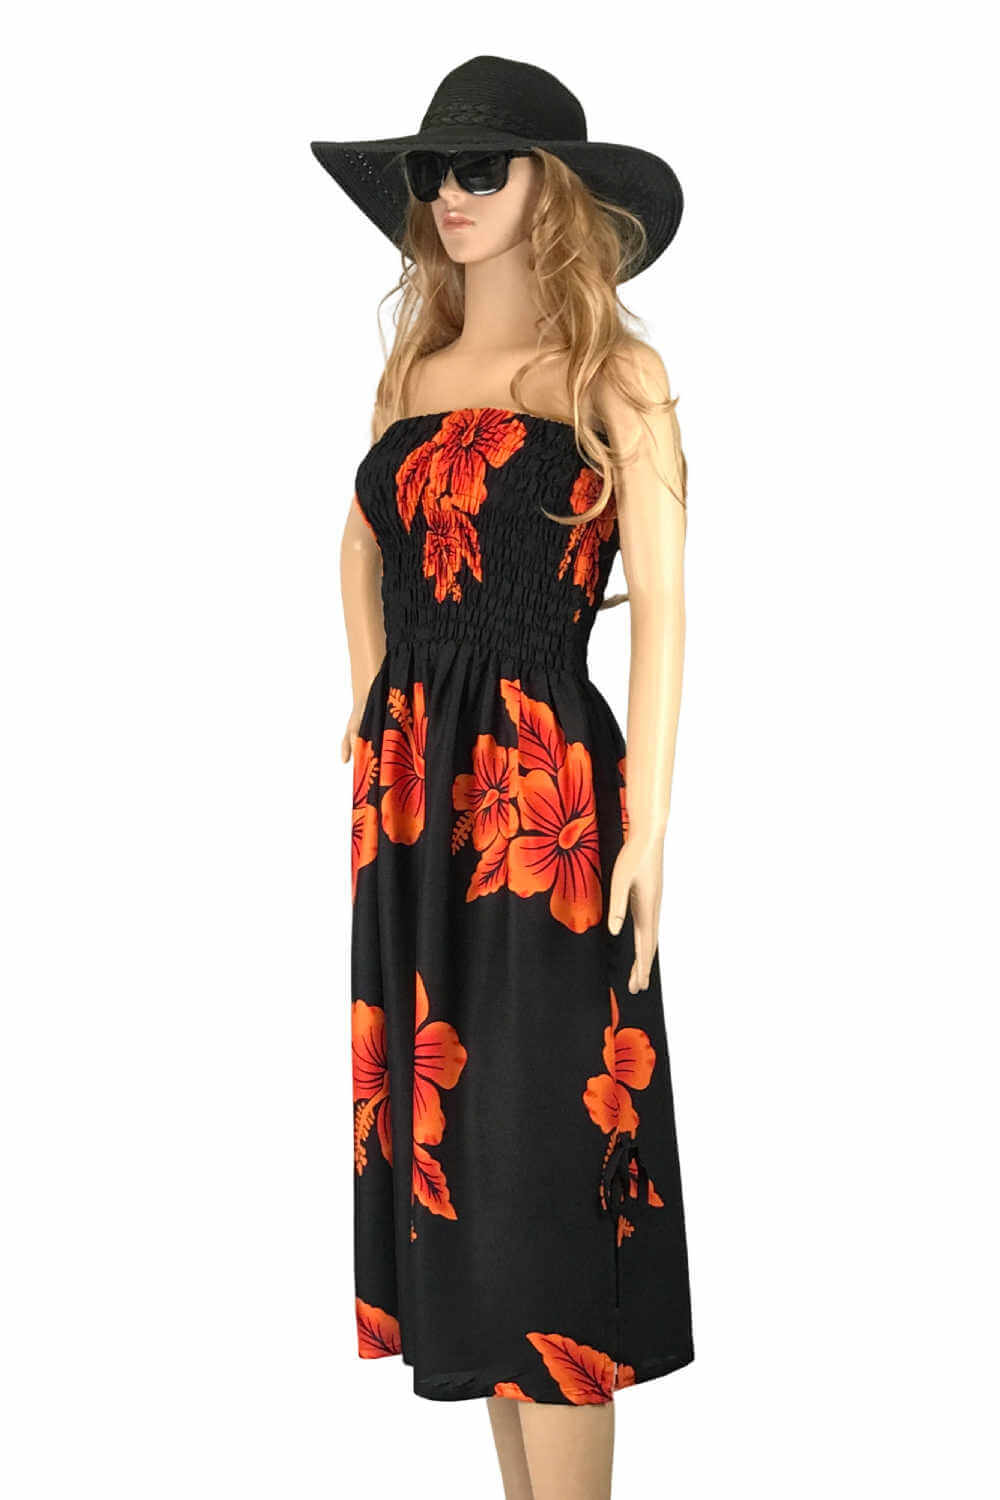 strapless-Boob-tube-Dress-hawaiian-orange-black